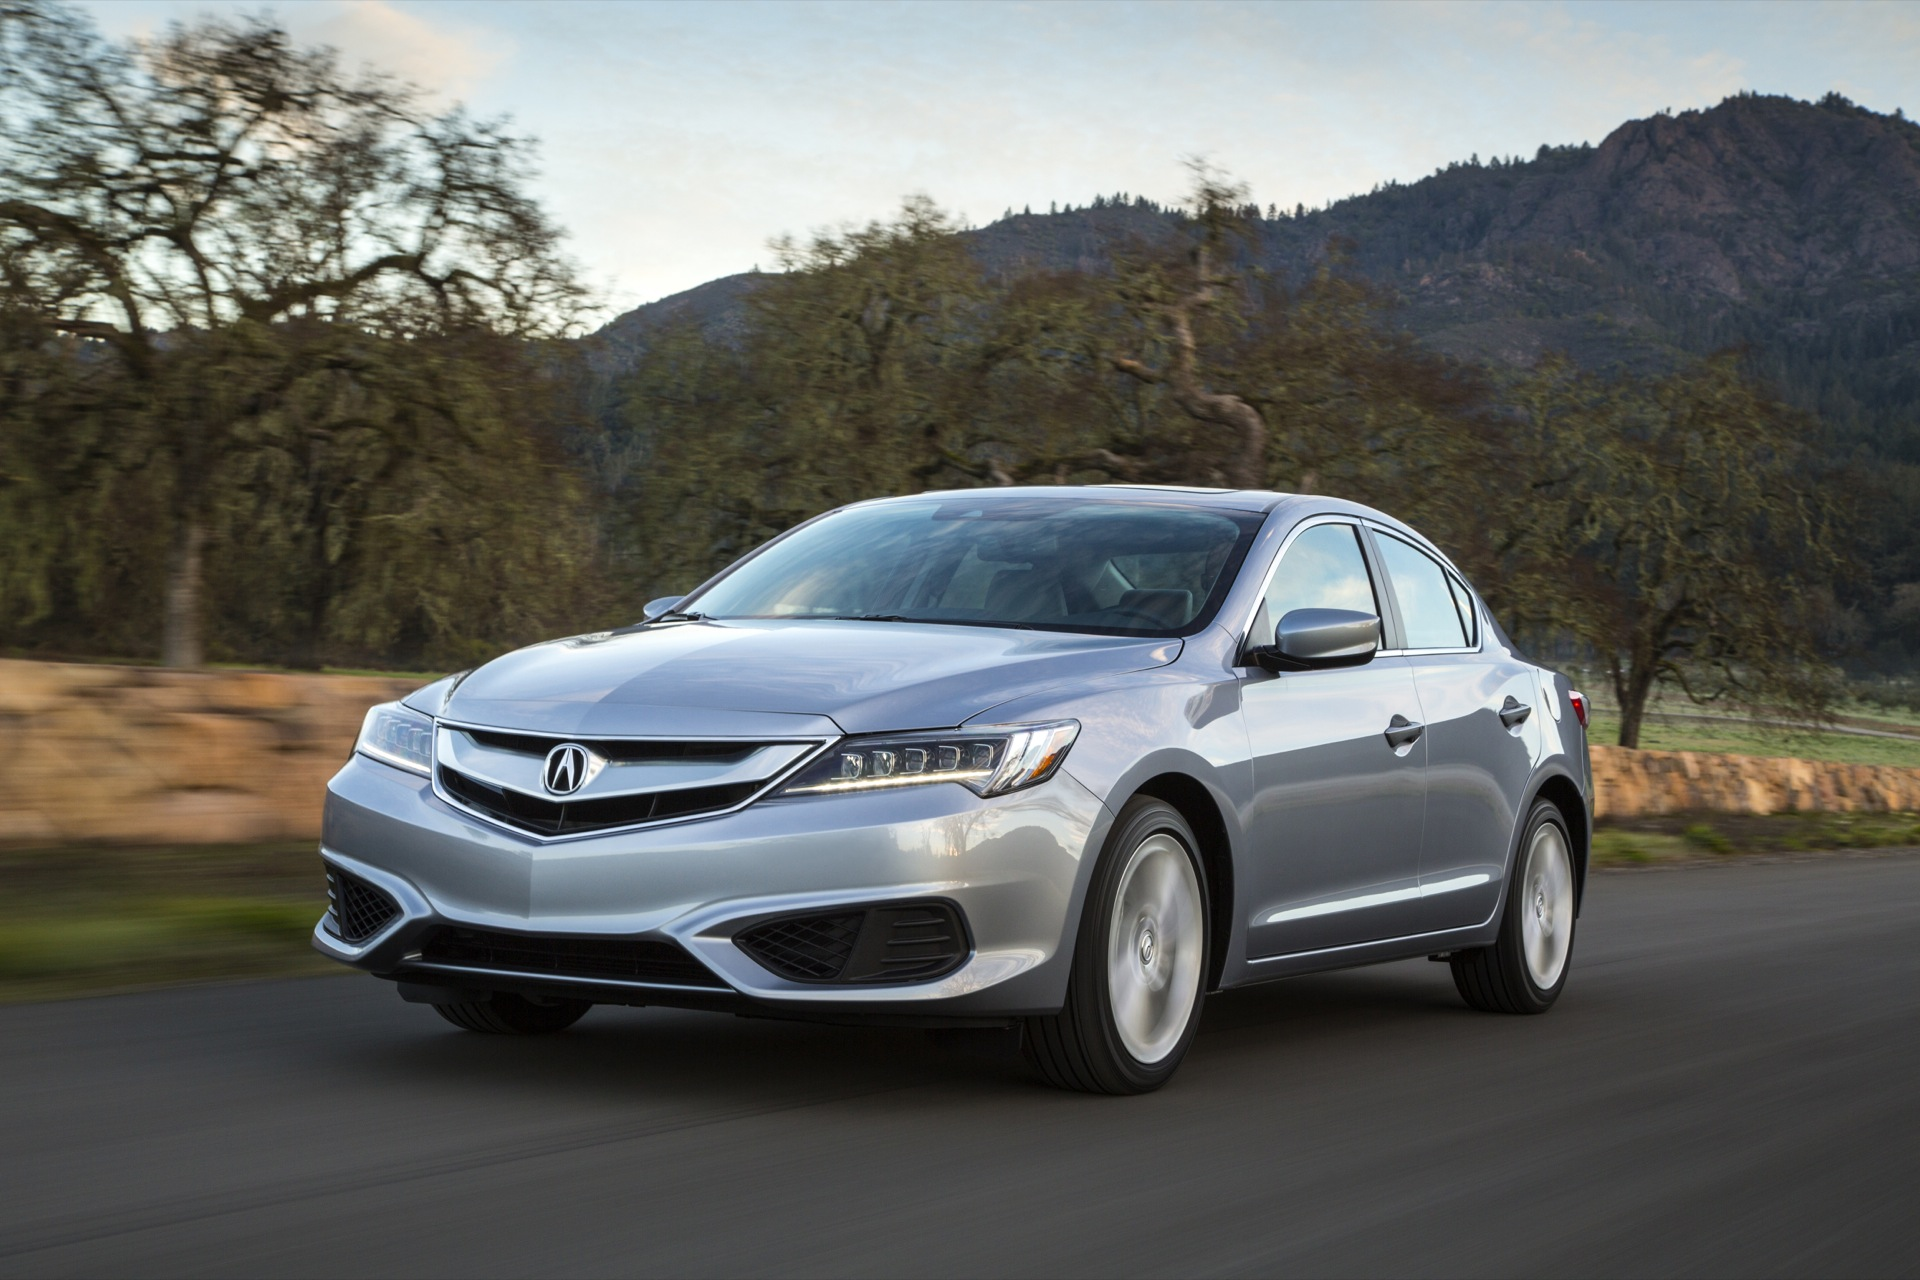 2016 acura ilx review ratings specs prices and photos the car connection. Black Bedroom Furniture Sets. Home Design Ideas